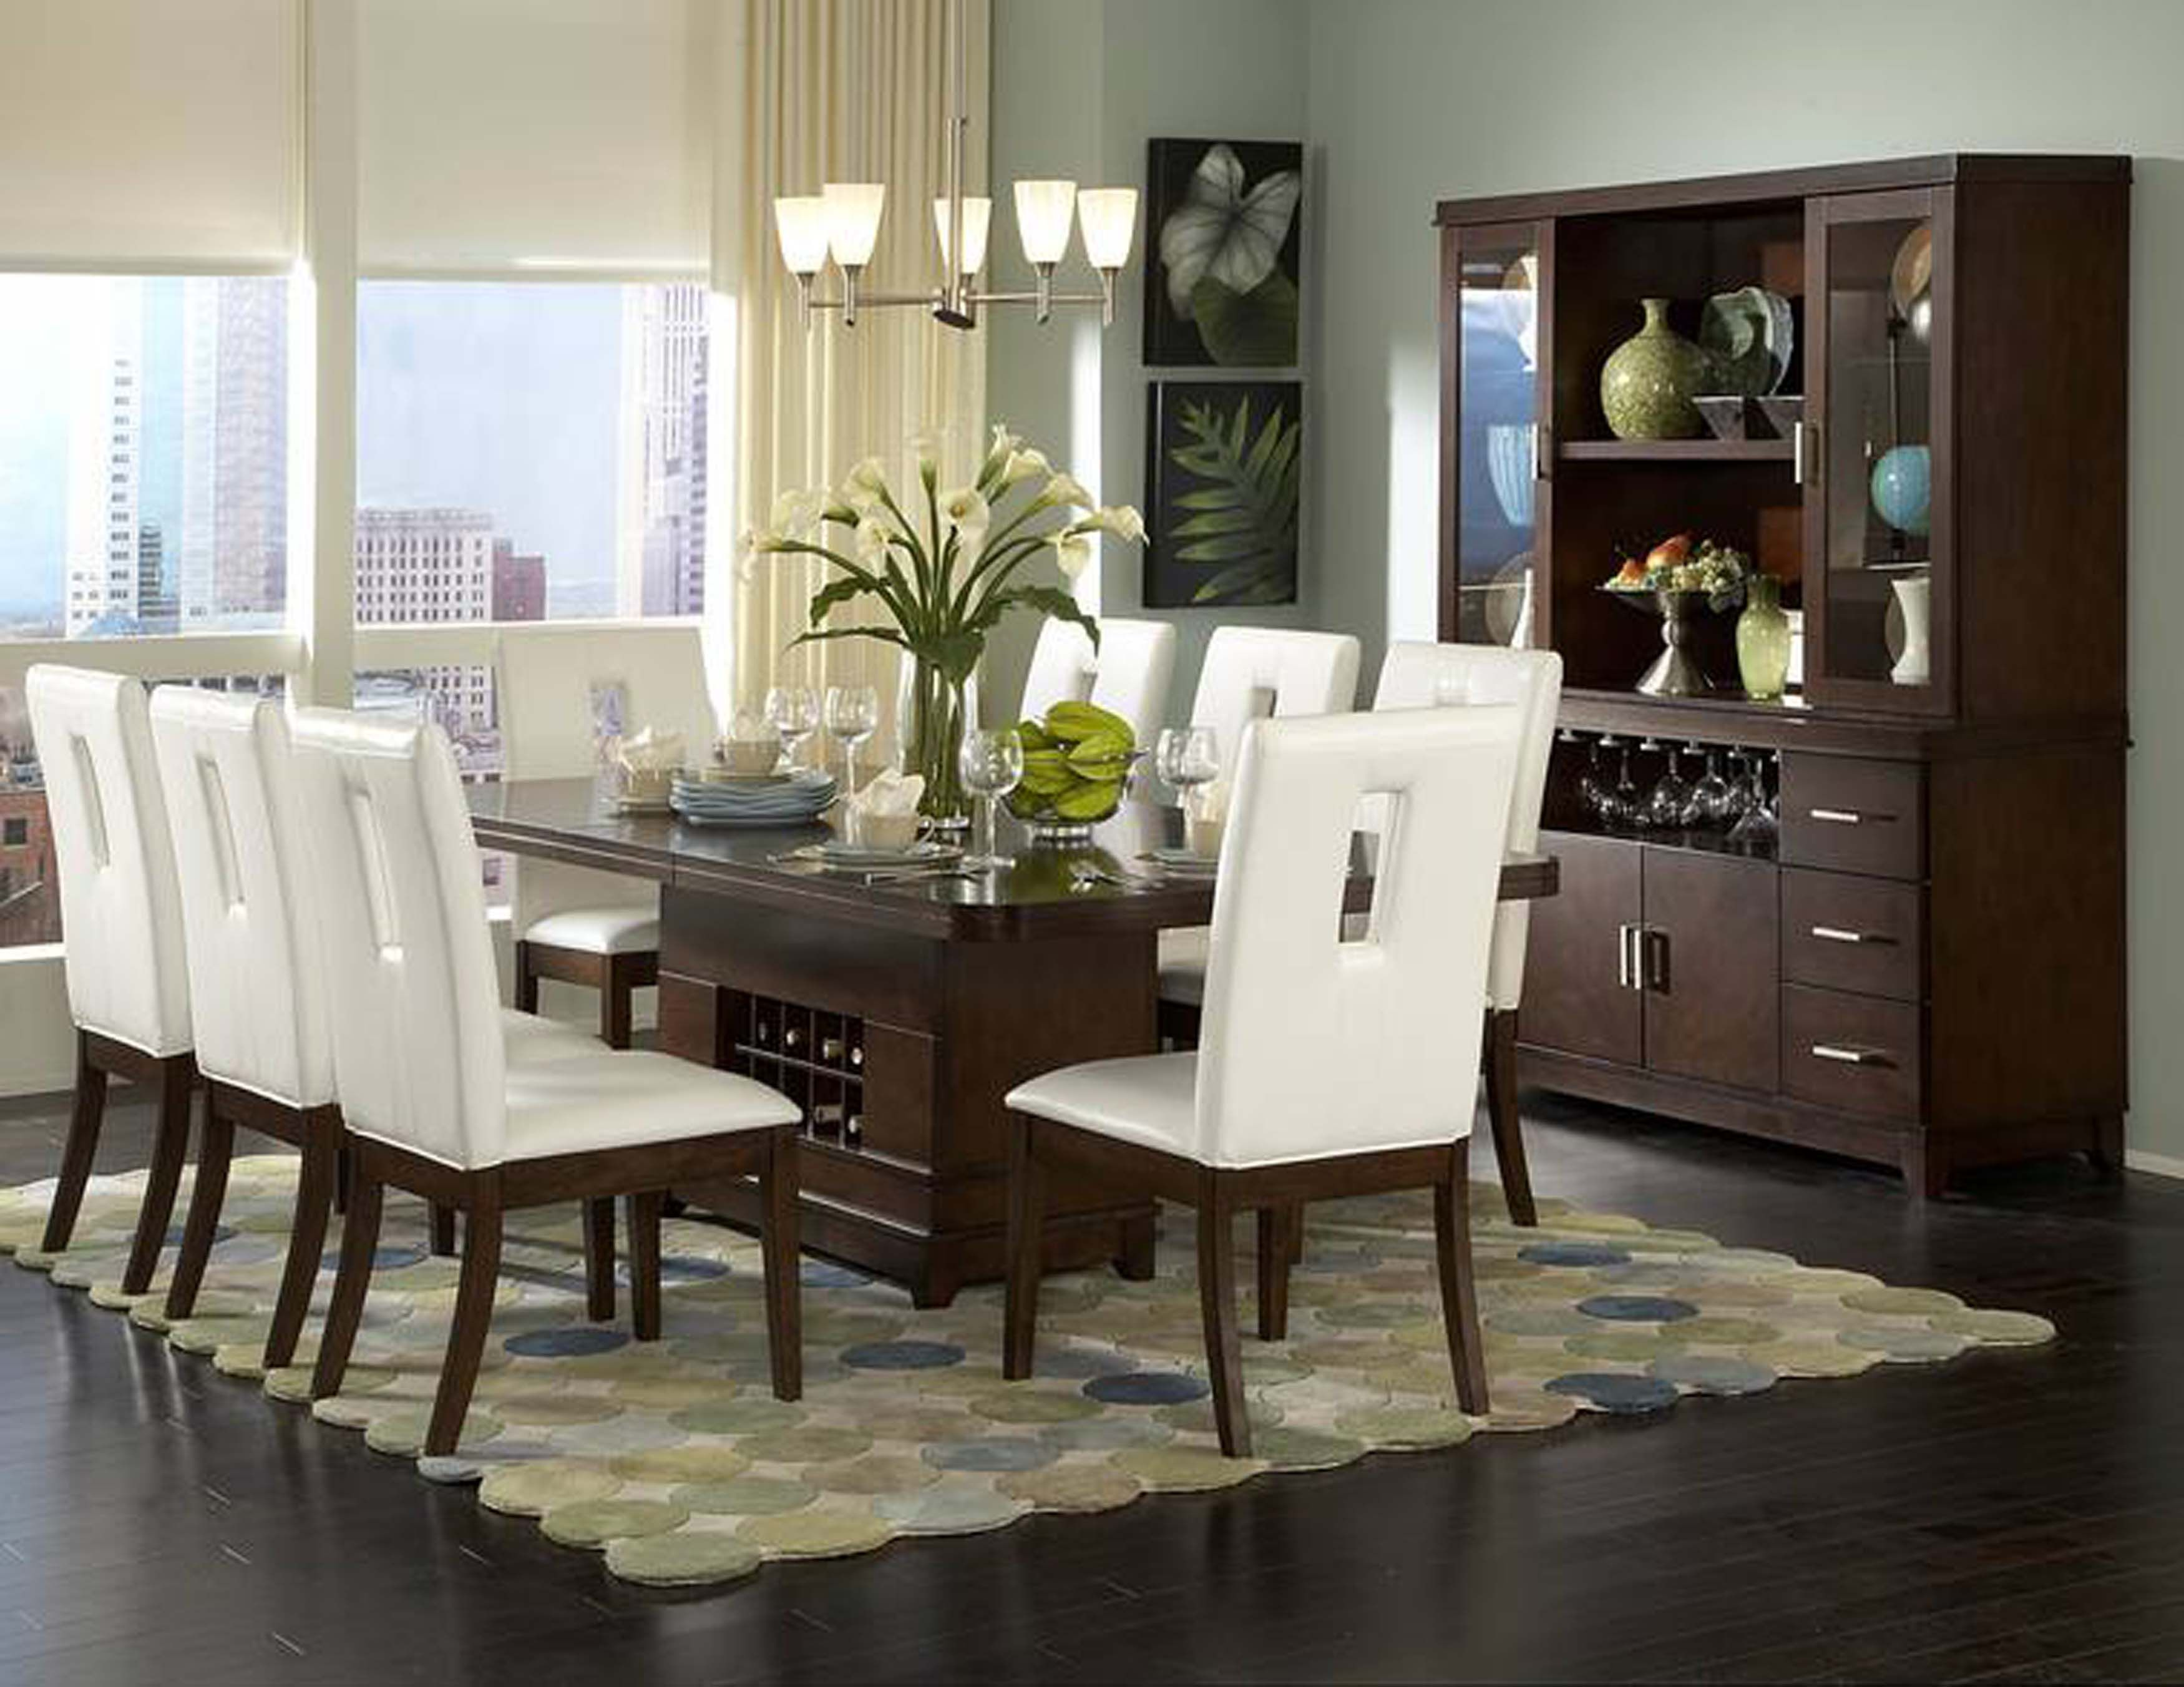 Charming The Stylish Contemporary Design Of Elmhurst Dining Collection By  Homelegance Creates Perfect Enhancement To Any Dining Room Dcor.  Rectangular Table Features ... Part 13